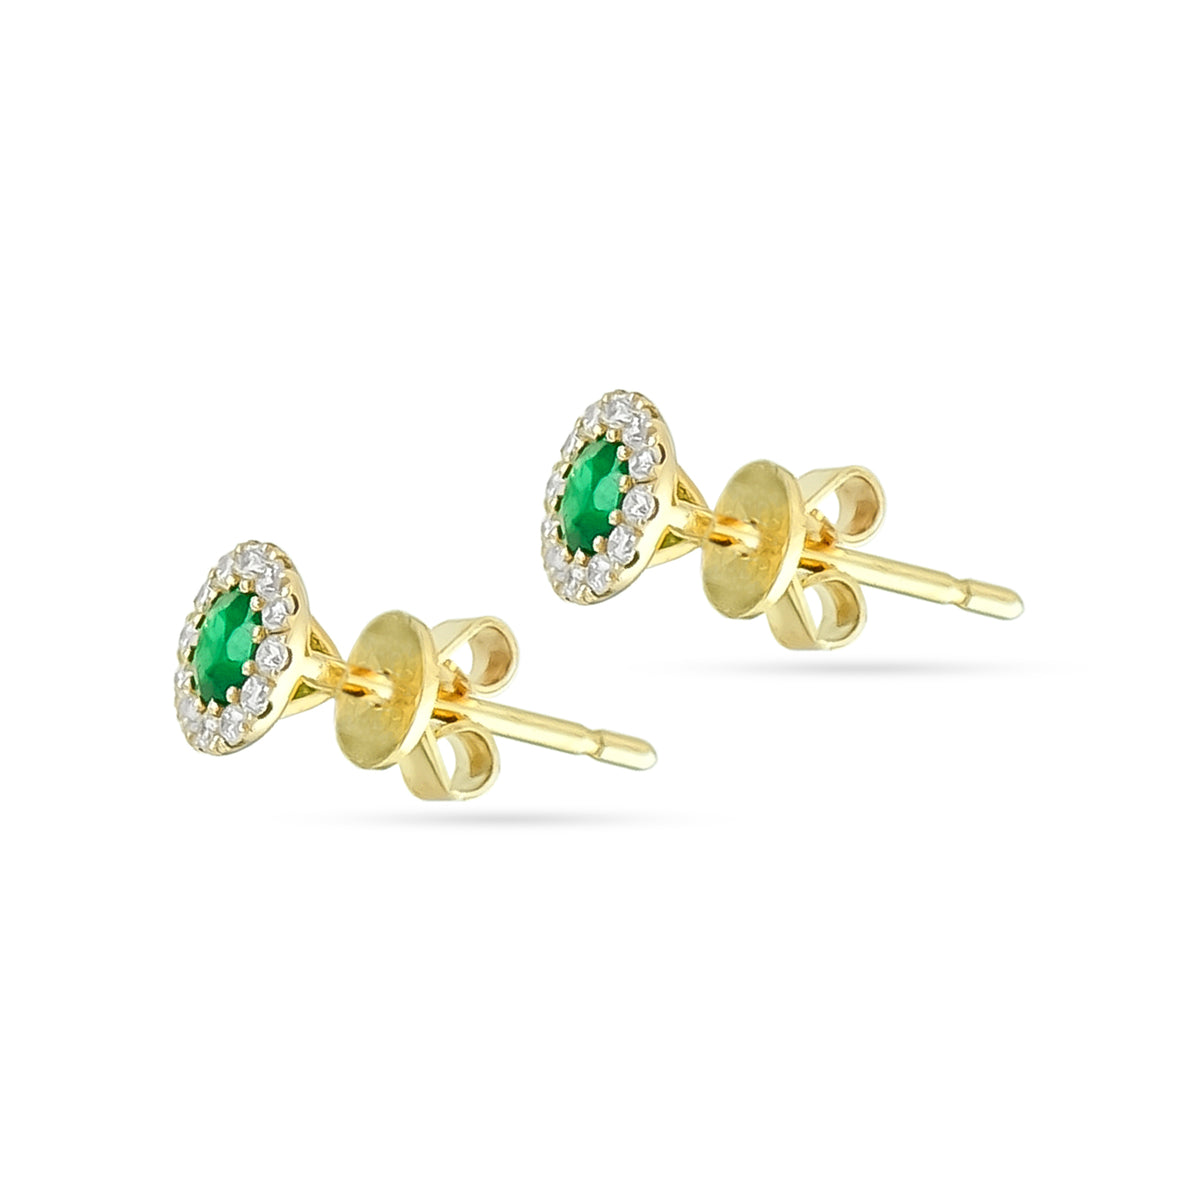 9ct Yellow Gold Emerald and Diamond Stud Earrings